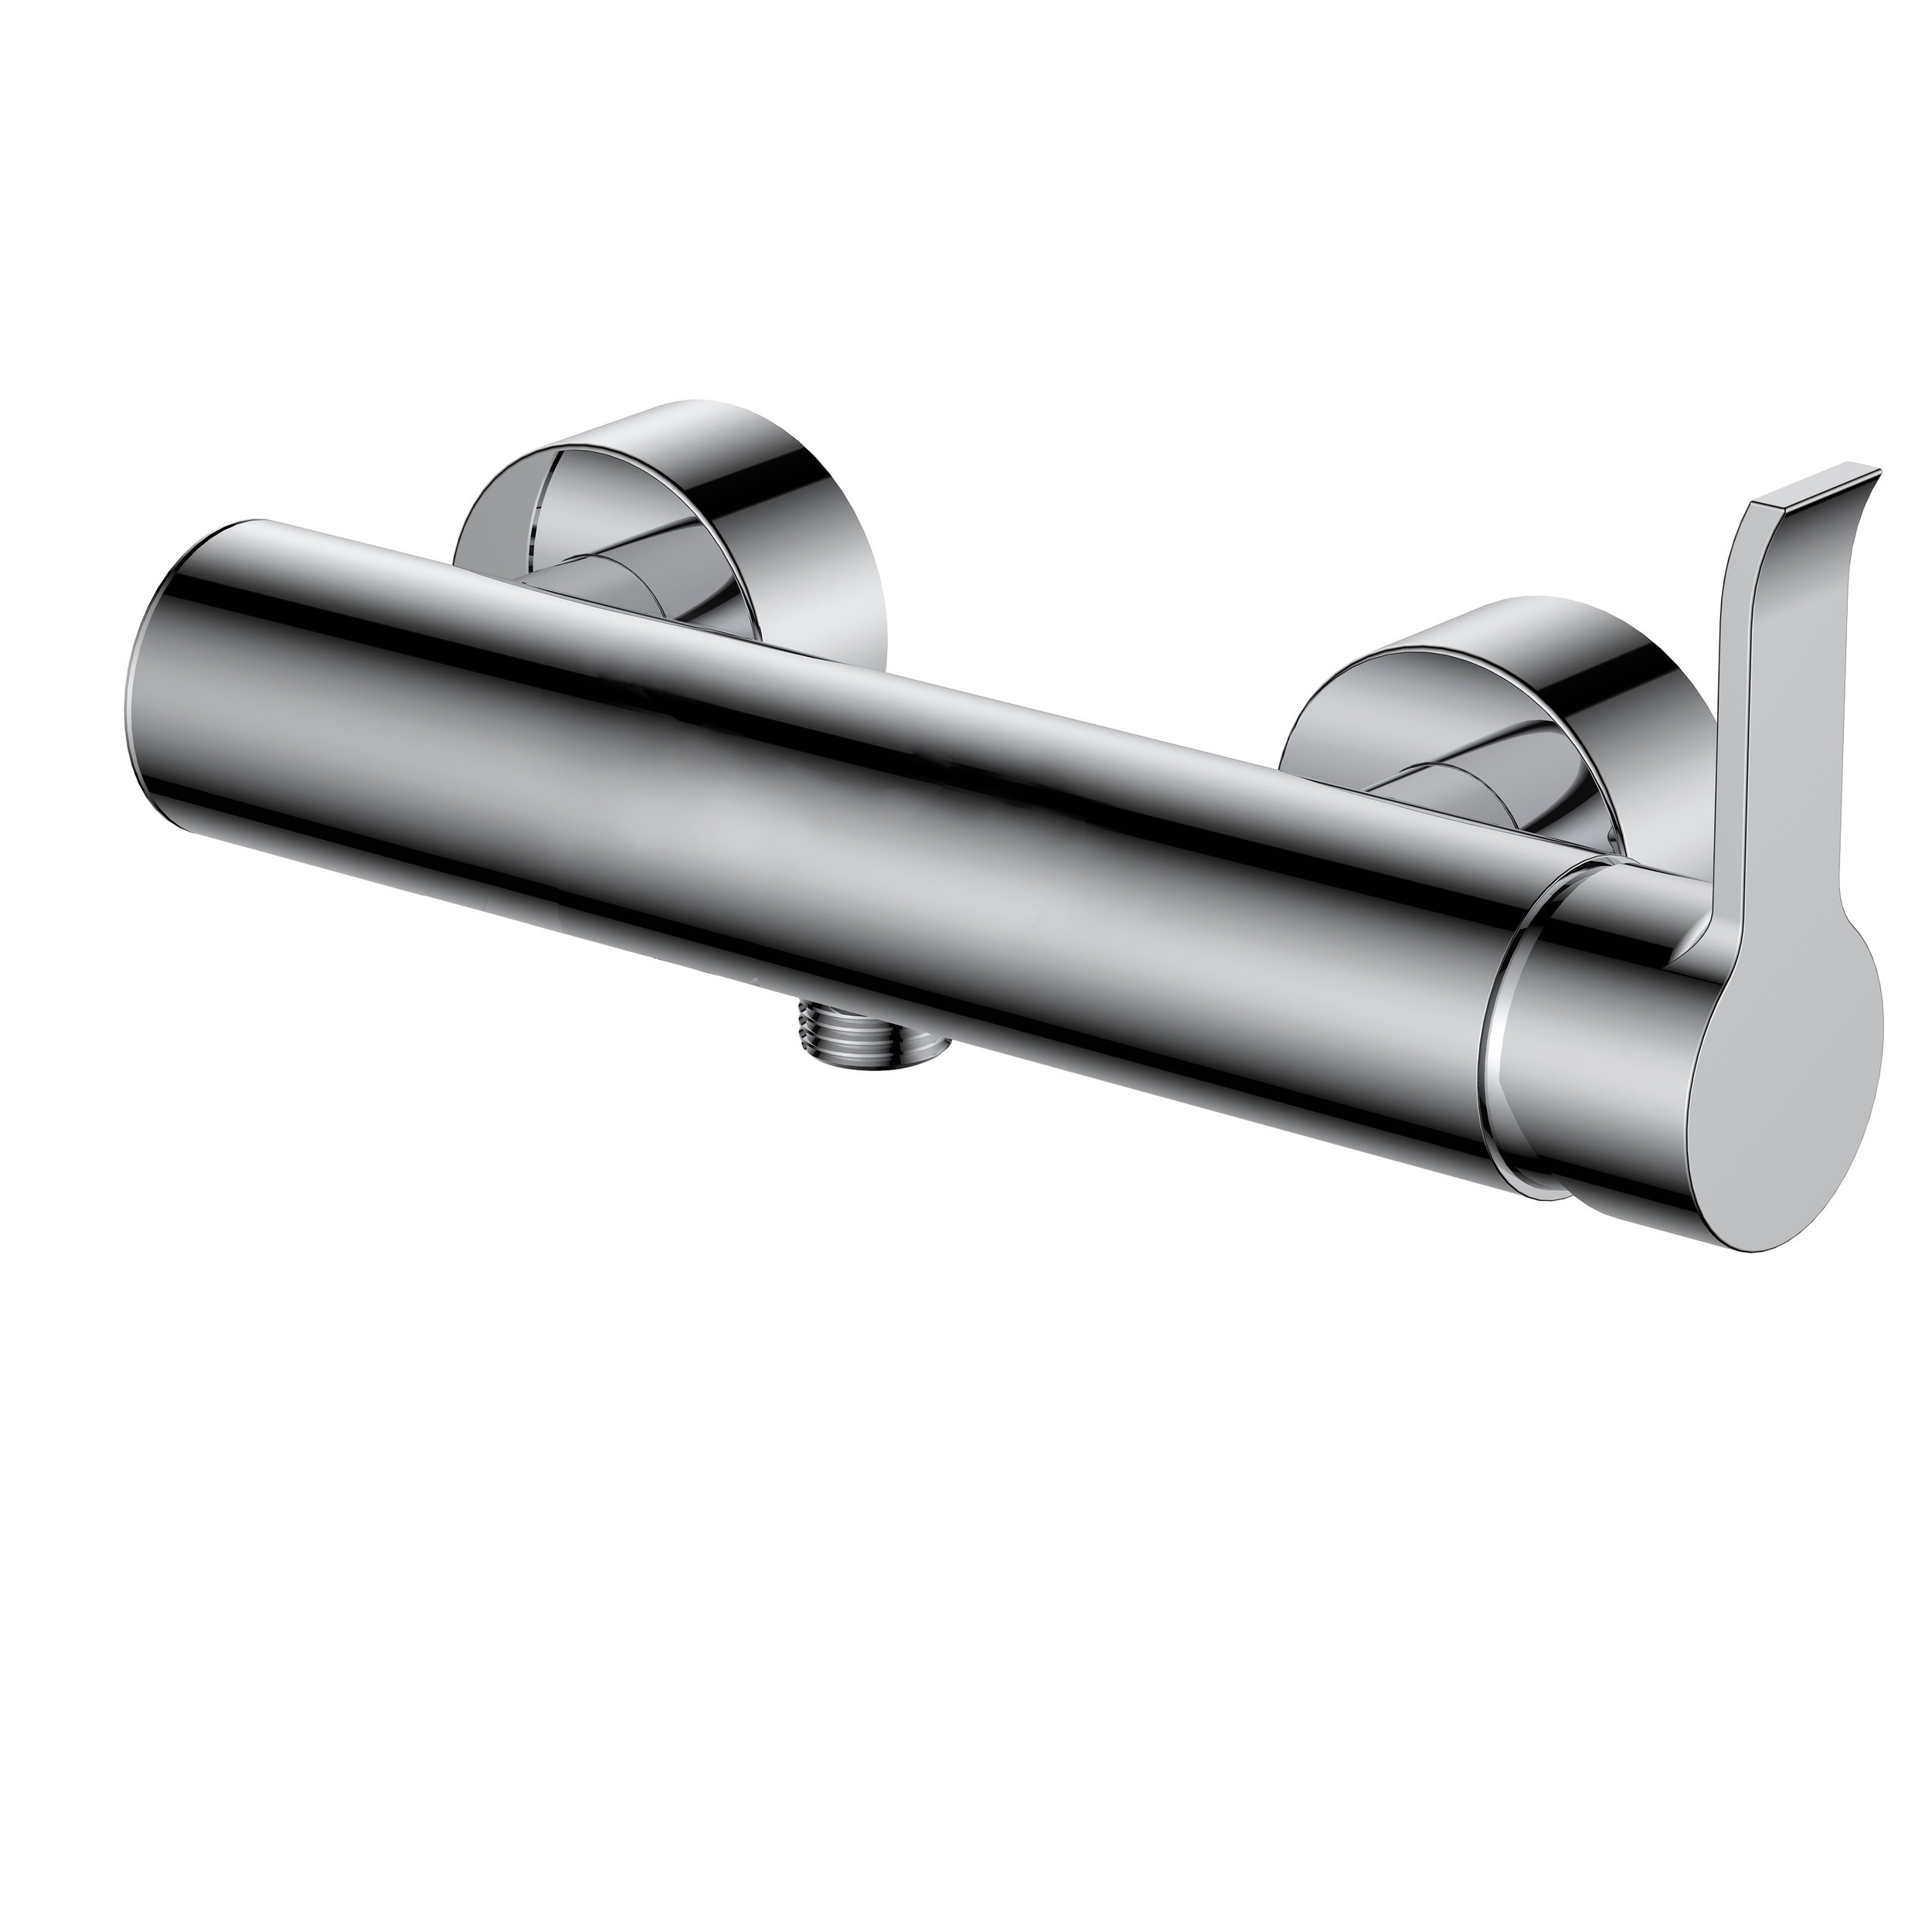 736-103: Wall mounted shower faucet